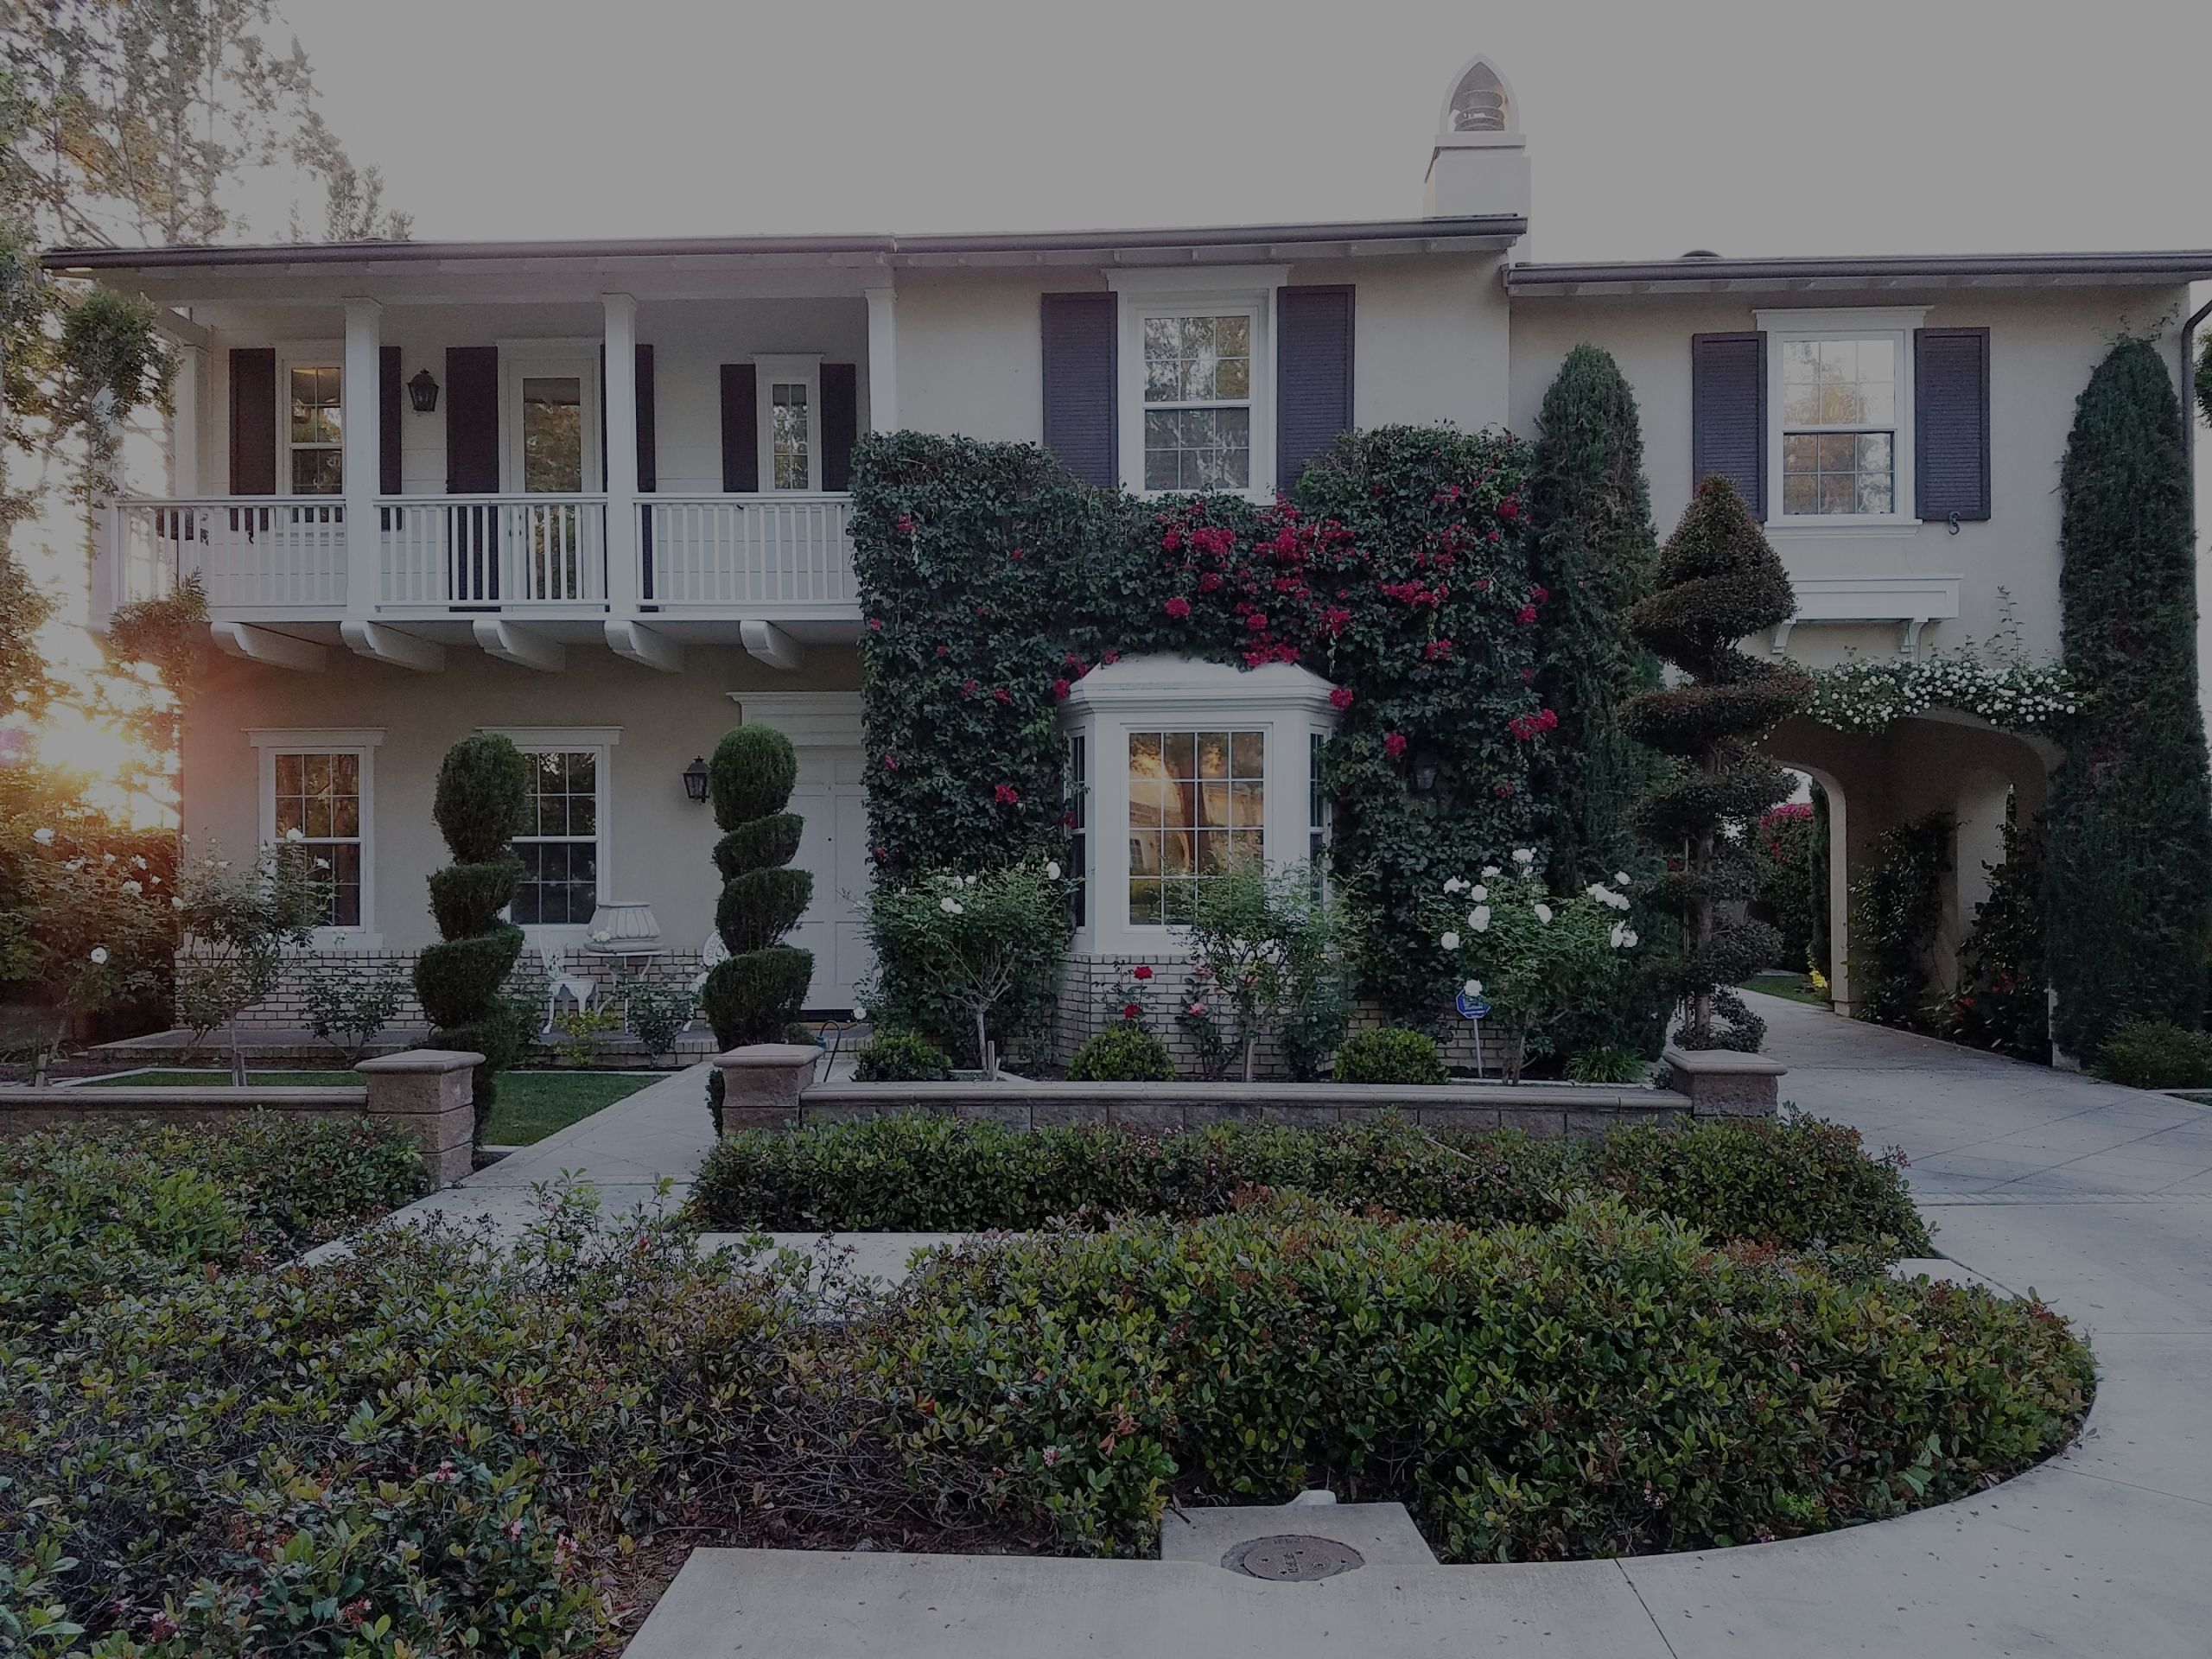 Cambria Plan 3 Home Coming To Market In Northpark | Guard-Gated Irvine Community Bruce Clark